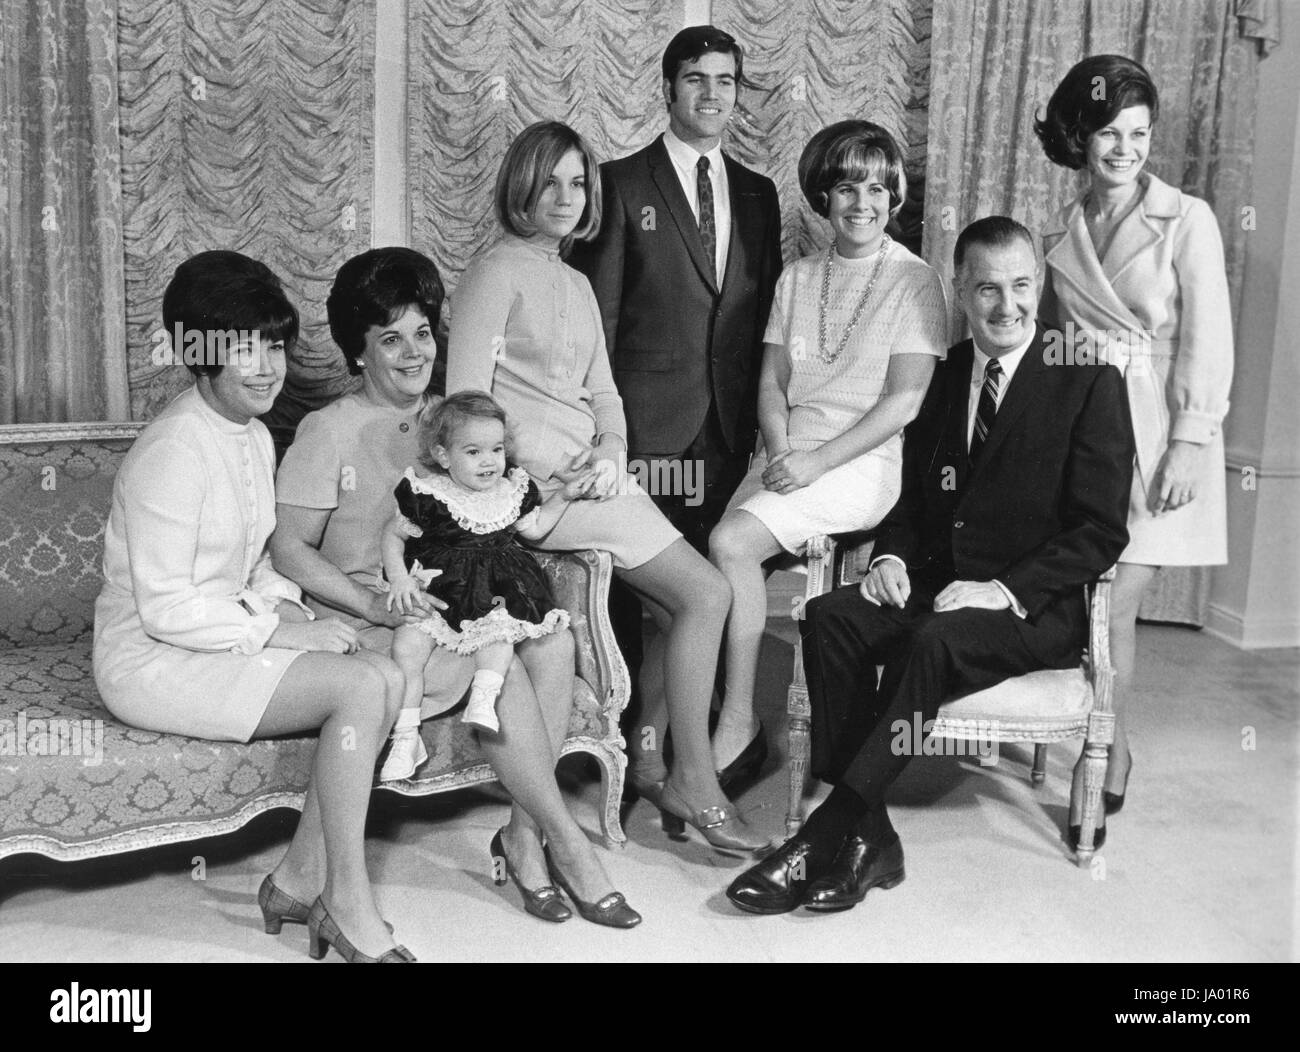 Vice President and Mrs. Spiro Agnew pose with members of their family including (from left to right), daughter Susan, - Stock Image